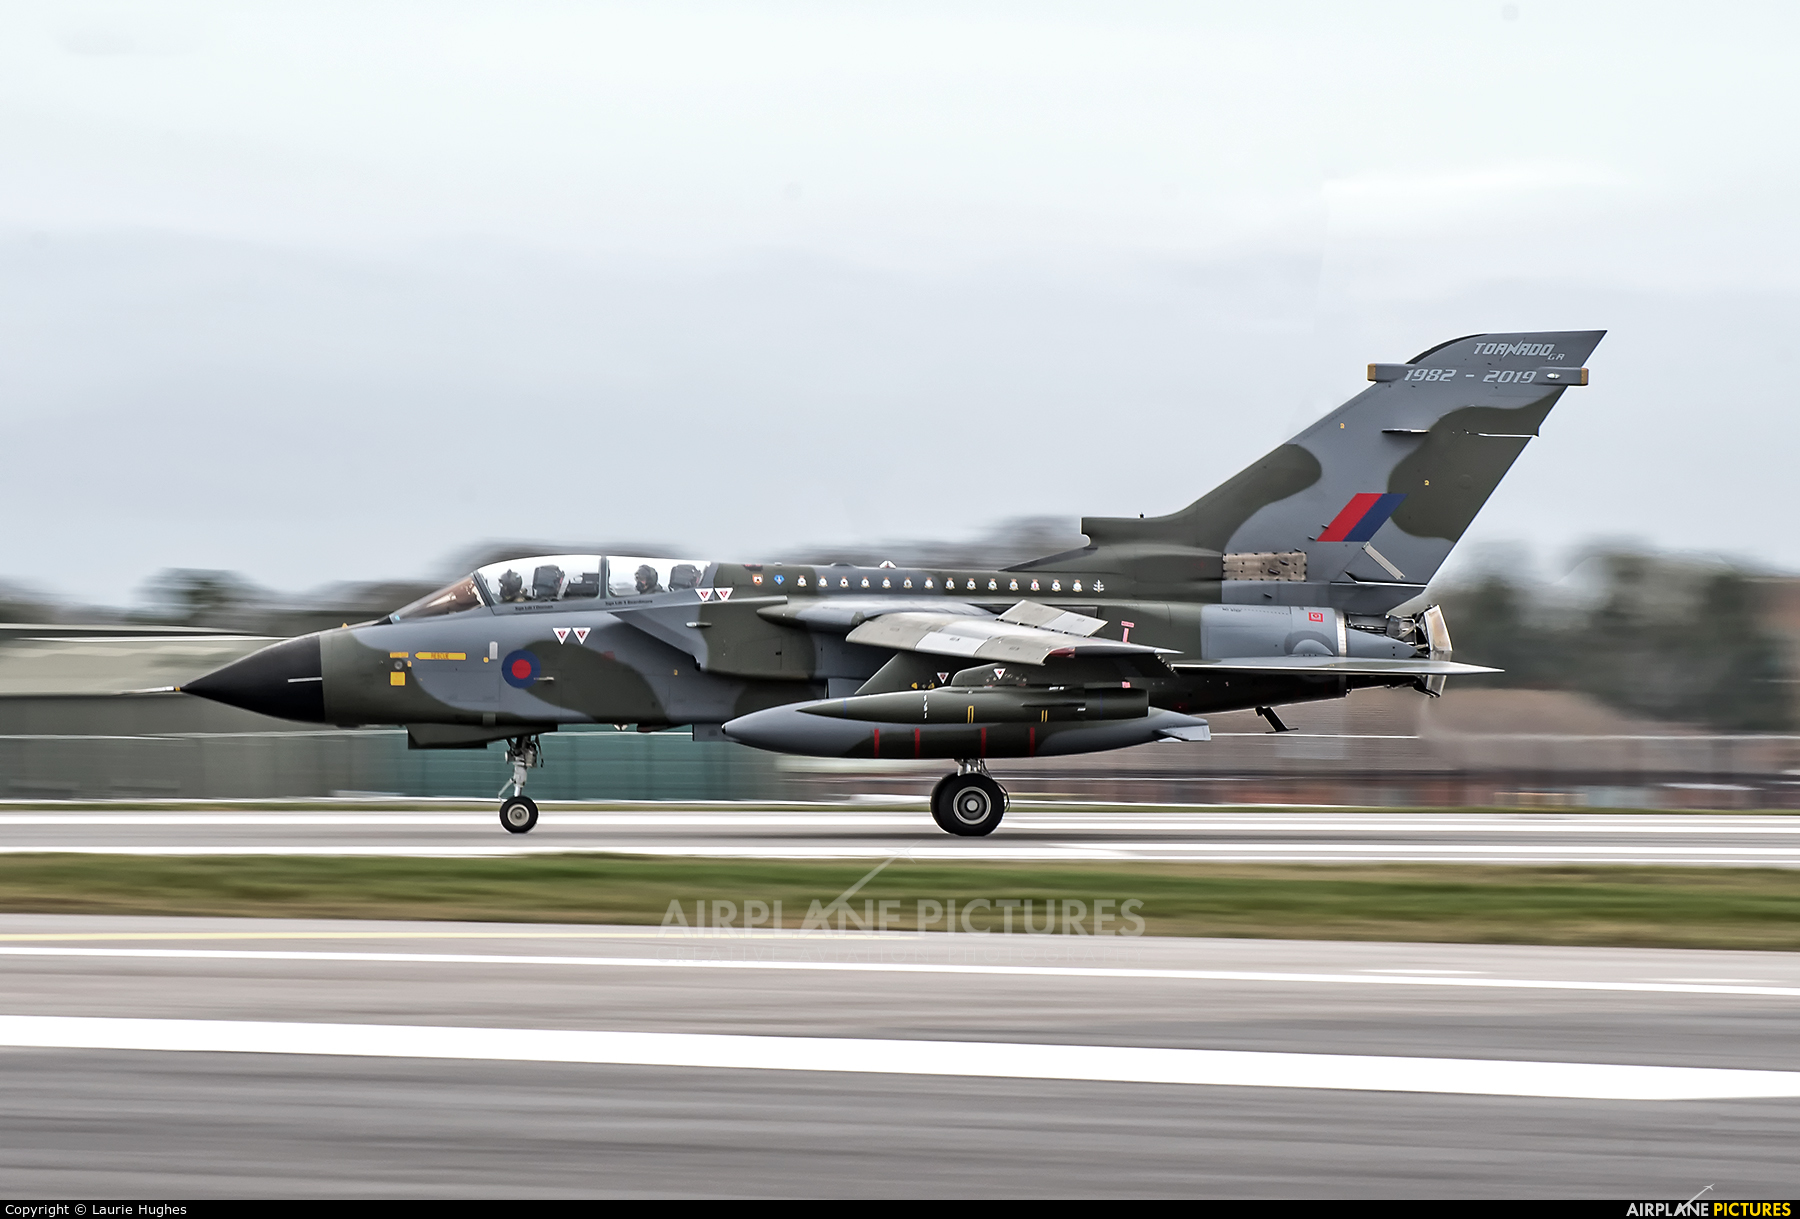 Royal Air Force ZG752 aircraft at Marham